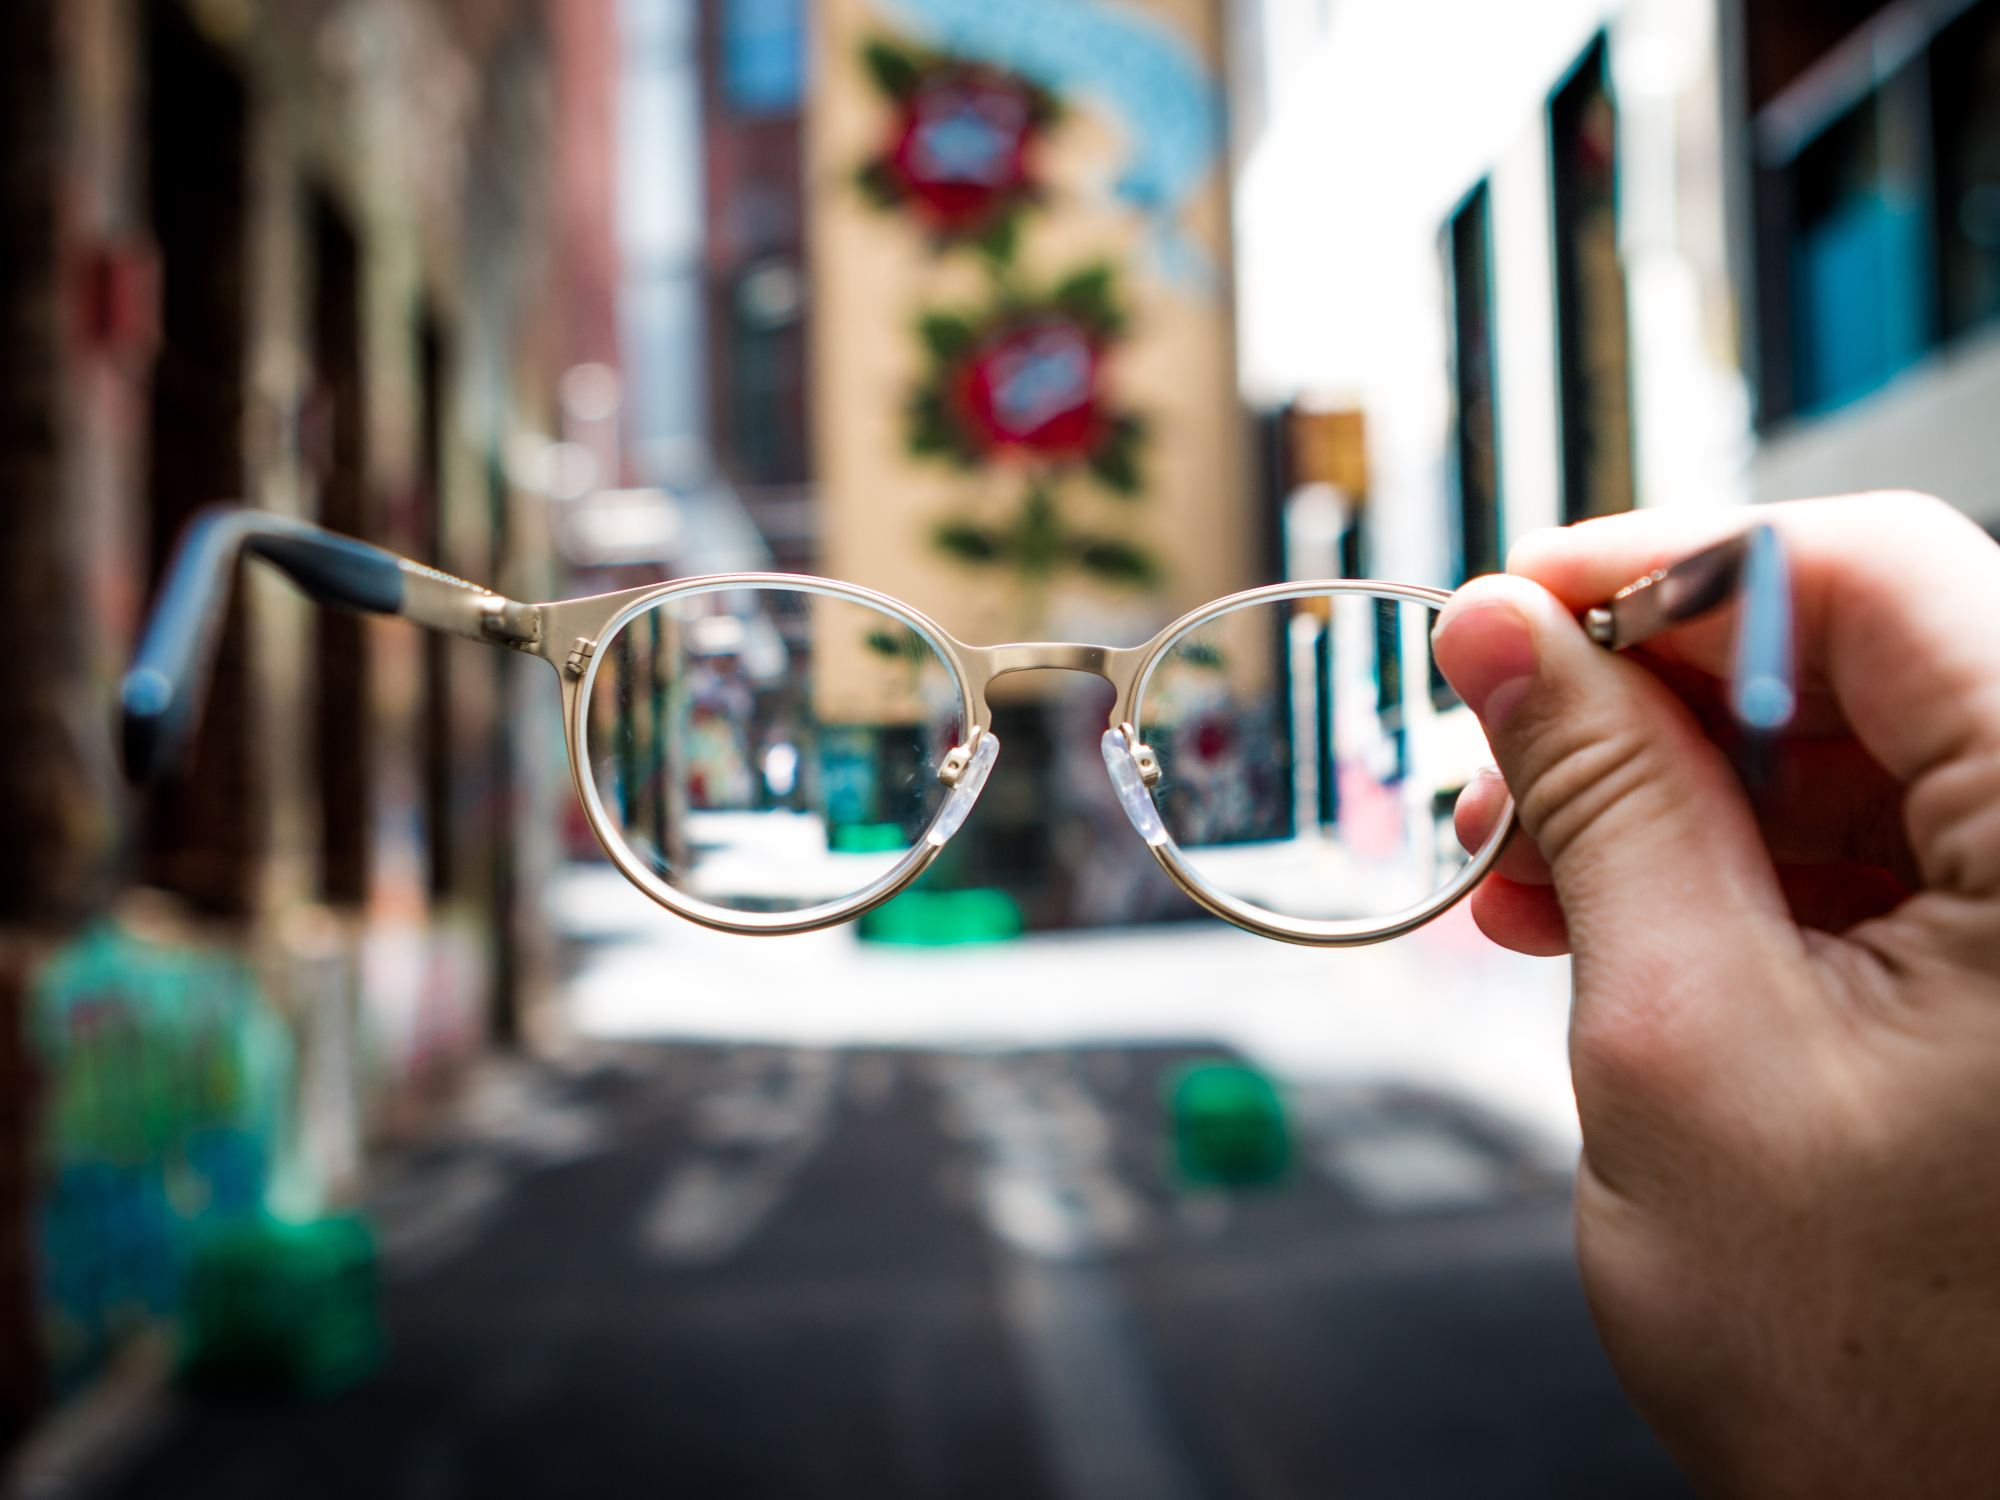 person holding a pair of prescription glasses against an urban backdrop